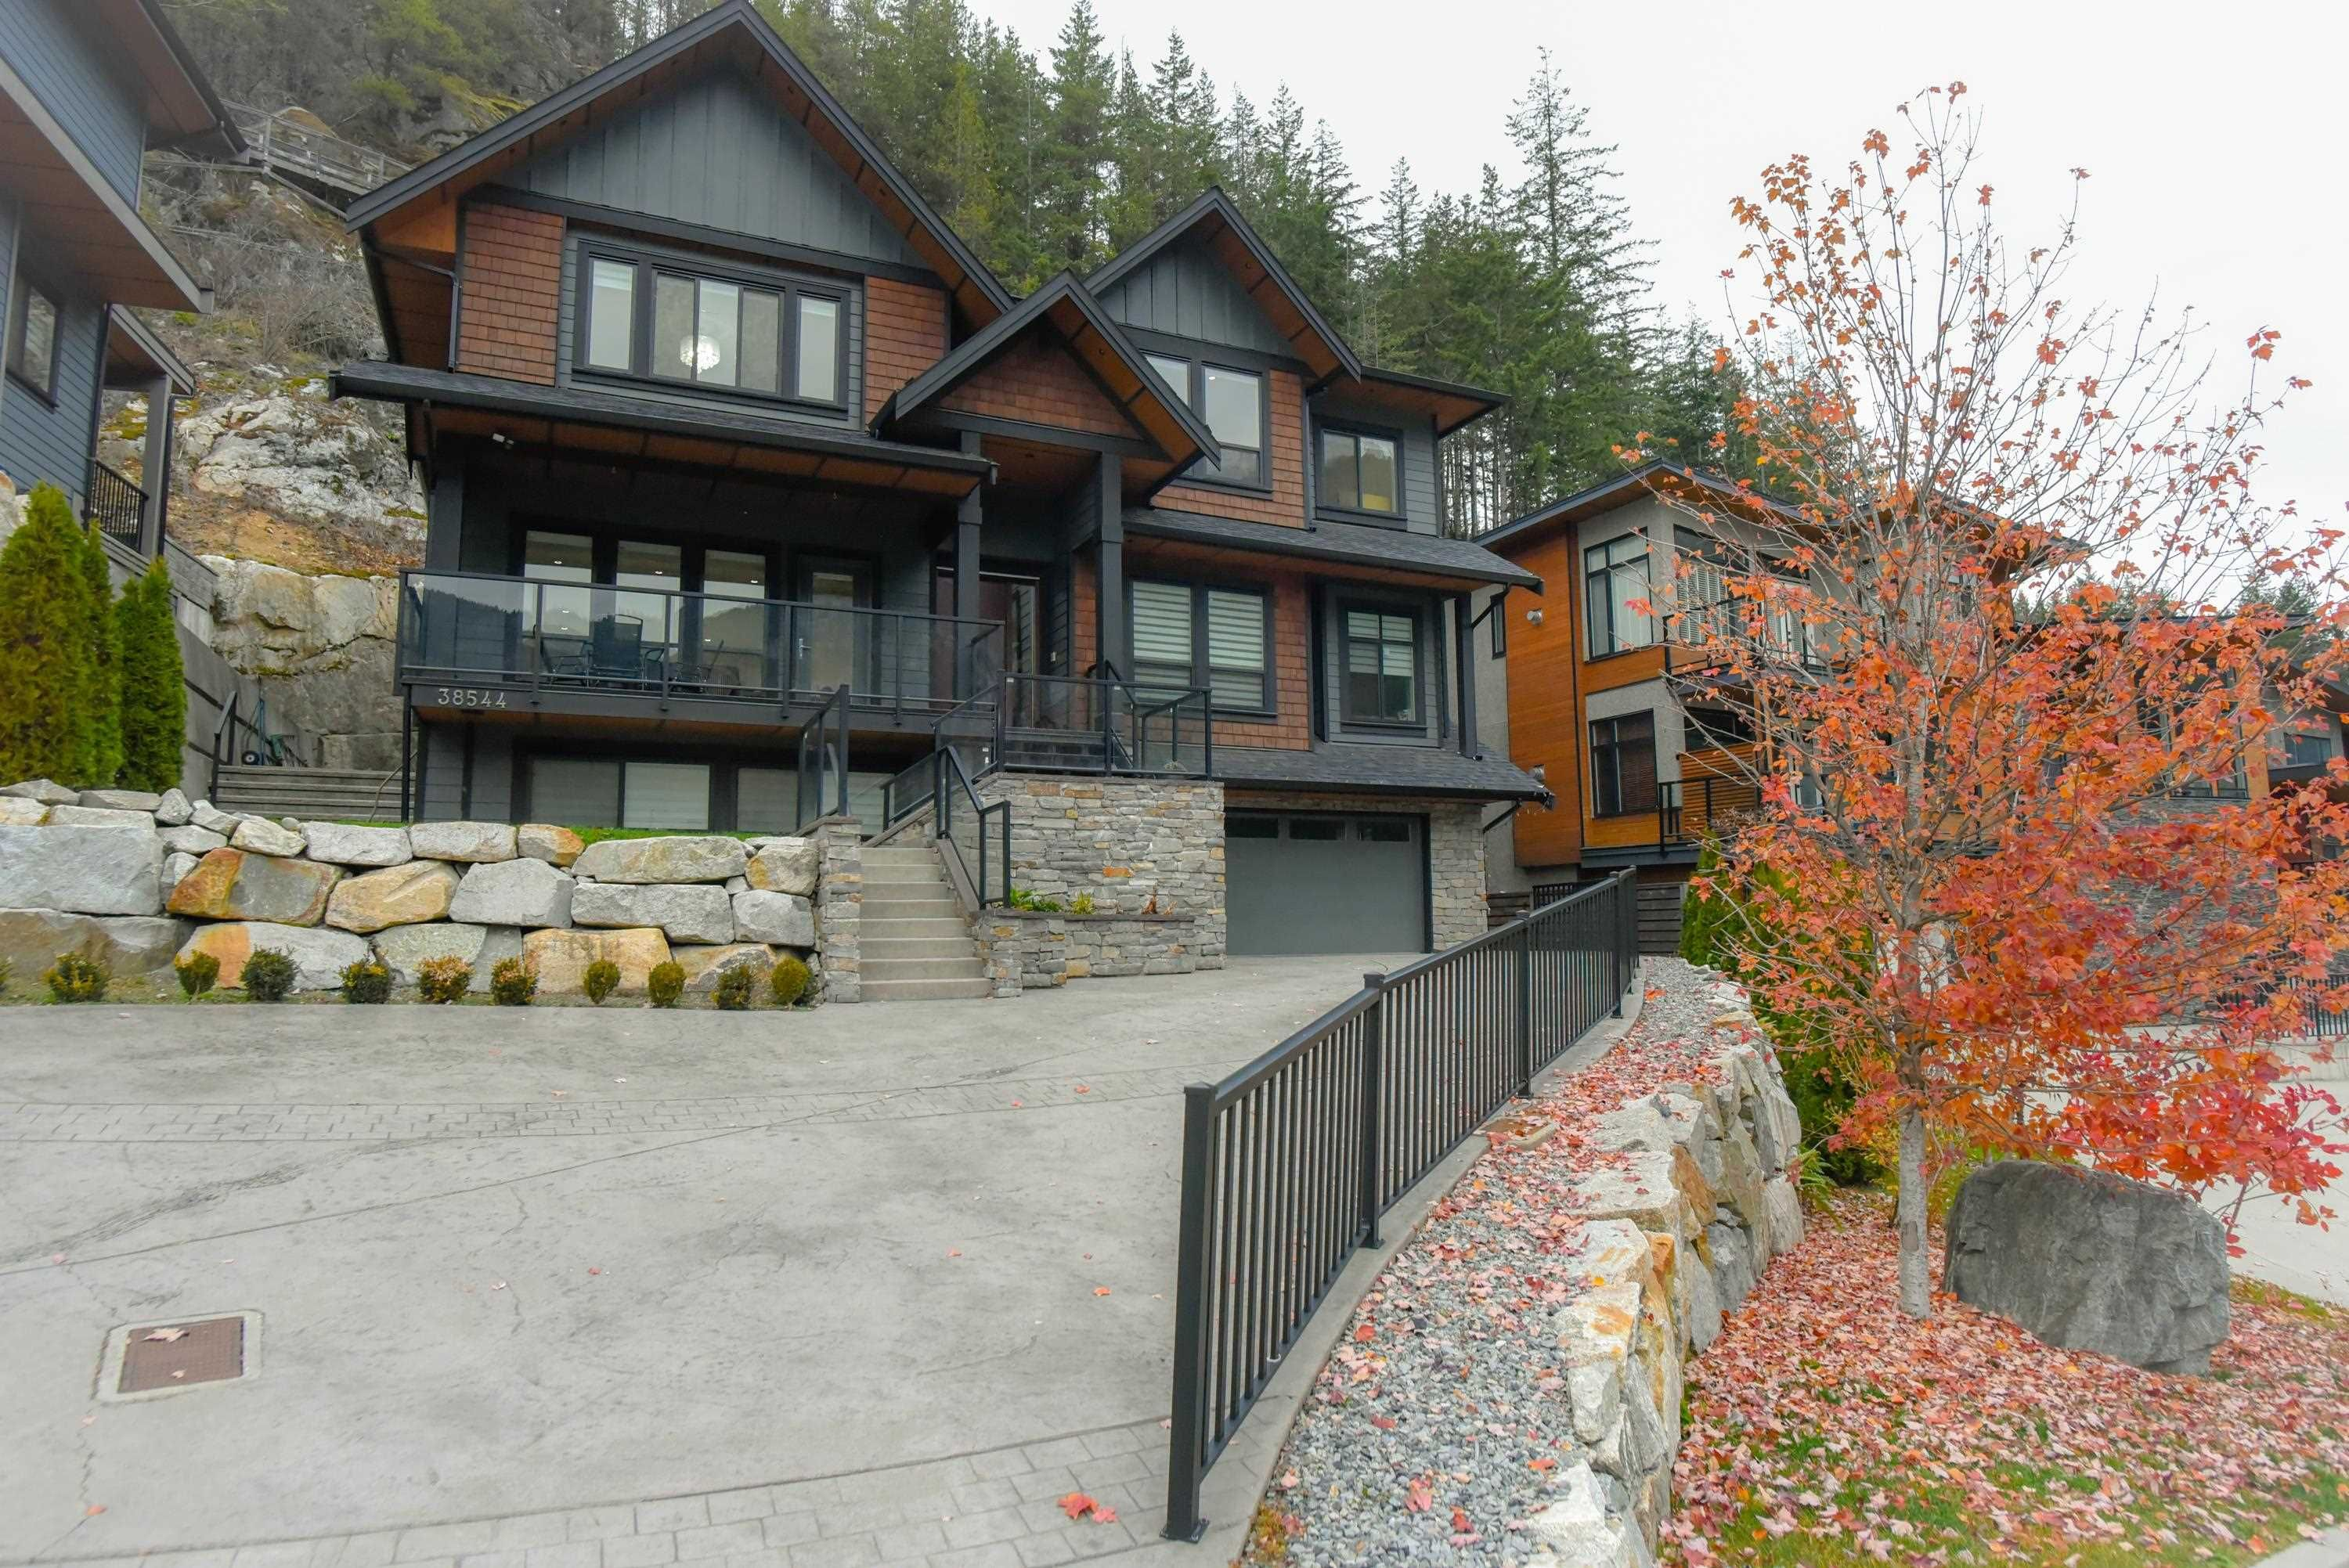 """Main Photo: 38544 SKY PILOT Drive in Squamish: Plateau House for sale in """"CRUMPIT WOODS"""" : MLS®# R2618584"""